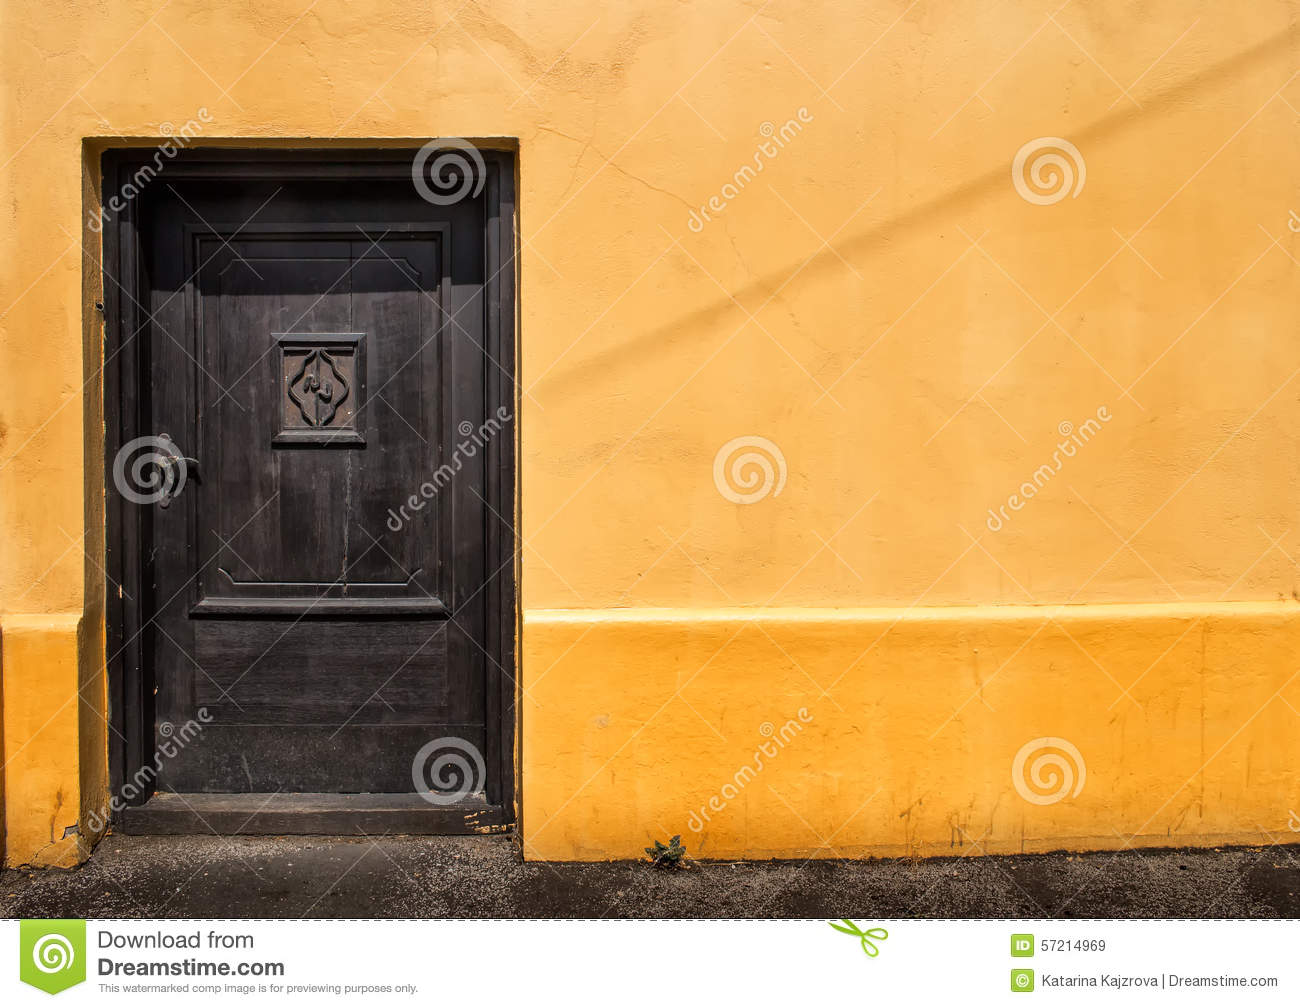 Dark Door In An Orange Wall Stock Image - Image of paint, wallpaper ...